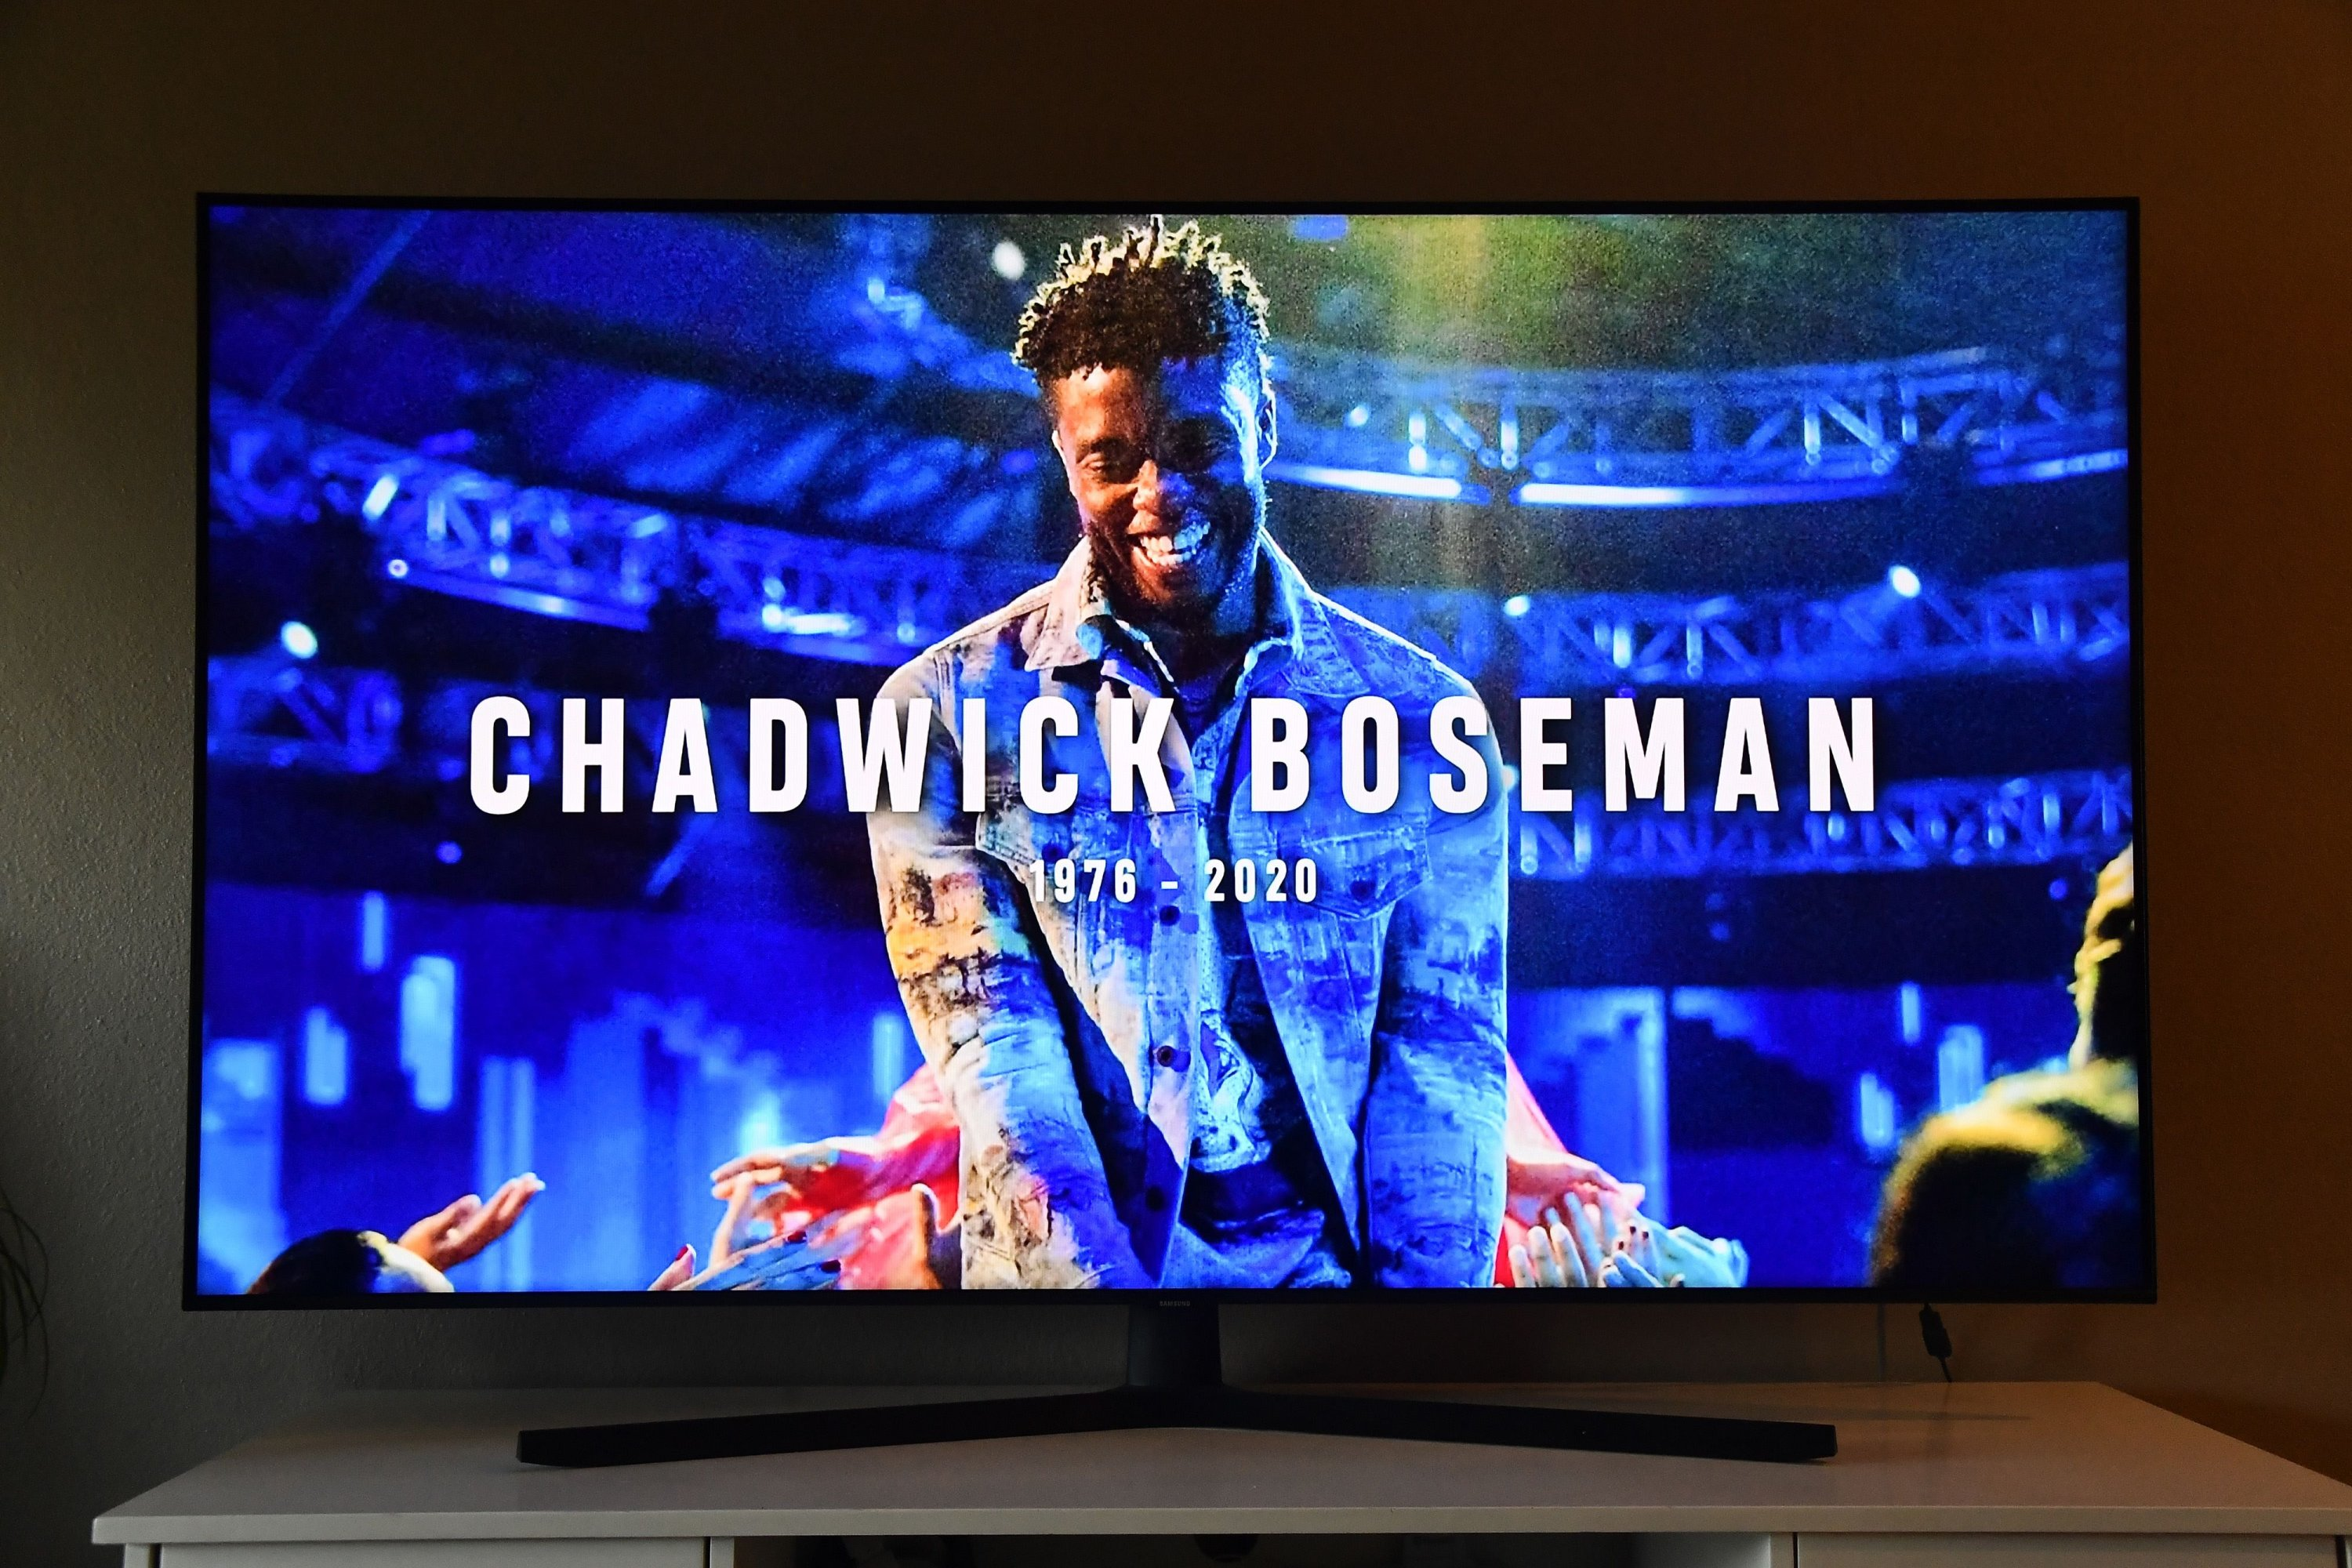 In this photo illustration, an In Memoriam for Chadwick Boseman, viewed on a laptop, is seen during the 2020 MTV Video Music Awards broadcast on Aug. 30, 2020 in New York City. (AFP PHOTO)